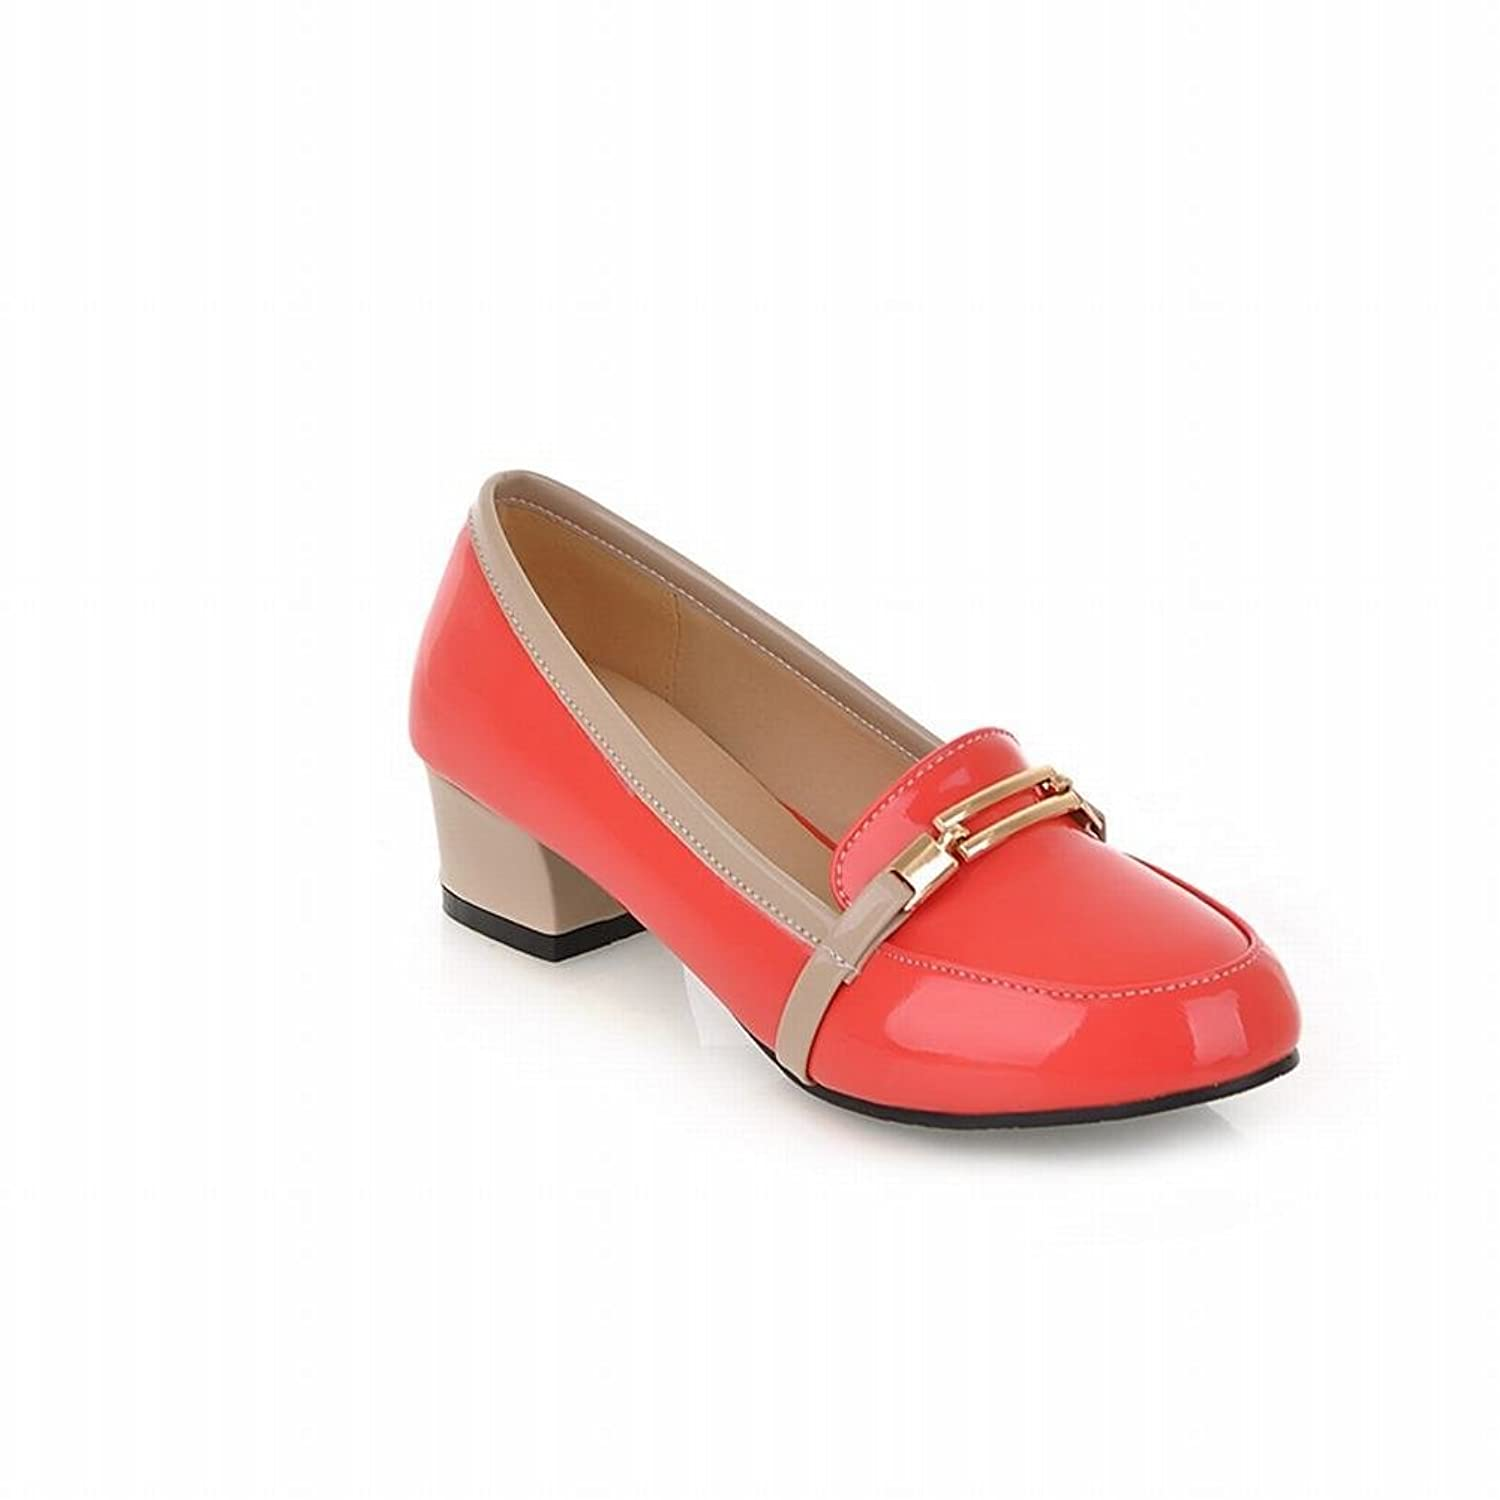 Latasa Women's Cute Patent-leather Mid Chunky Heels Slip on Loafers Shoes